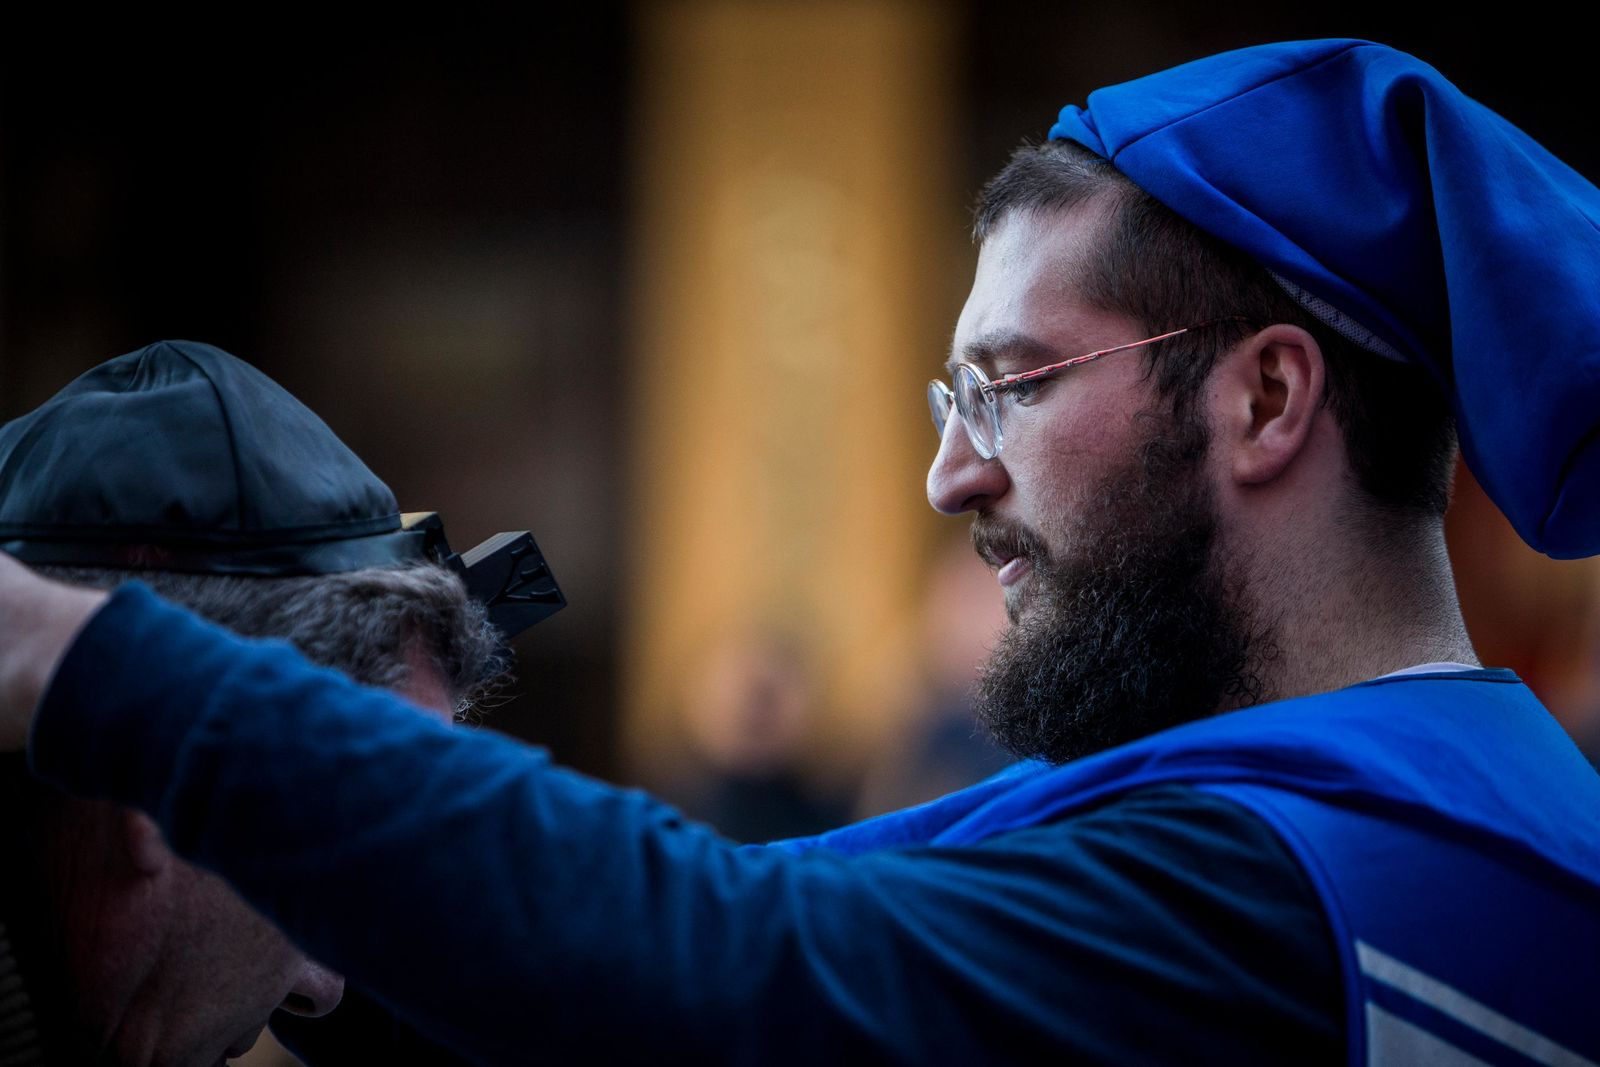 Shlomo Sirota wraps the tefillin around an attendee of the Grand Menorah Lighting in downtown Las Vegas on Sunday, Dec. 2. The ceremony featured a 20-foot Grand Menorah, which will remain on display throughout the Hanukkah season. CREDIT: Joe Buglewicz/Las Vegas News Bureau